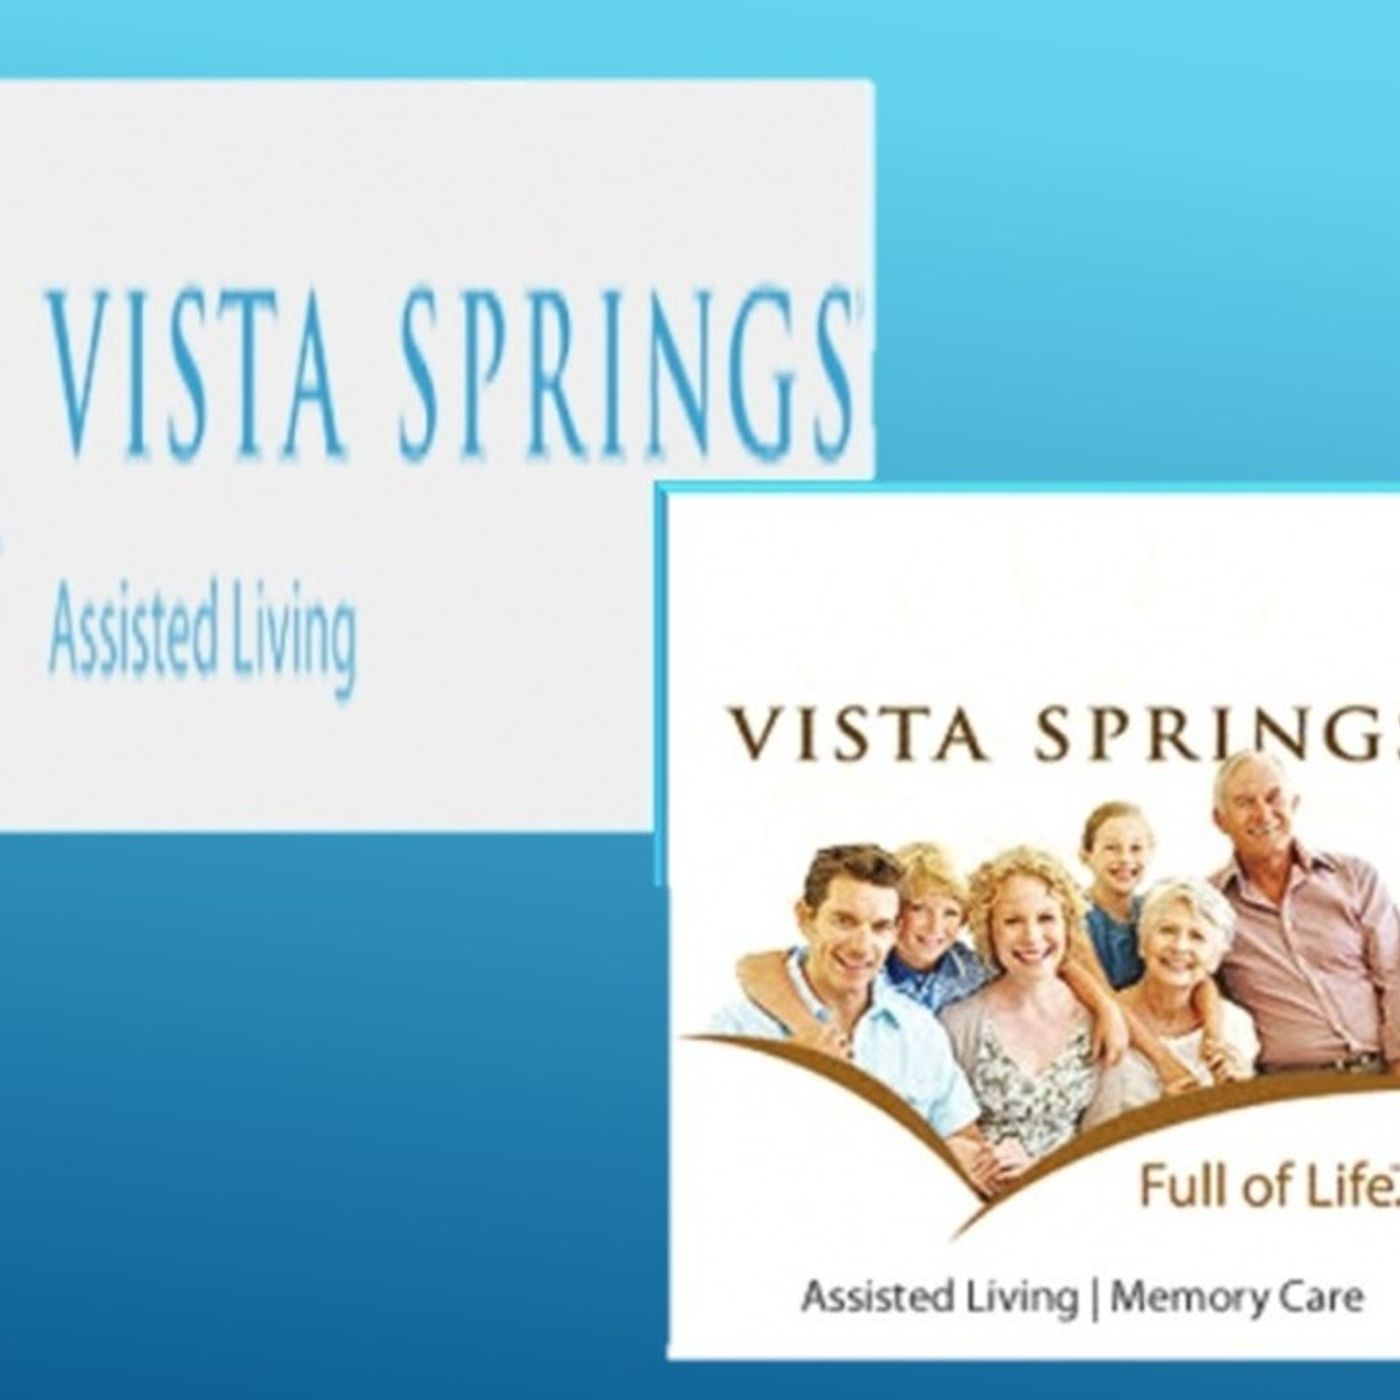 Denise Gawlik_sharing the Vists Springs Experience 6_26_19